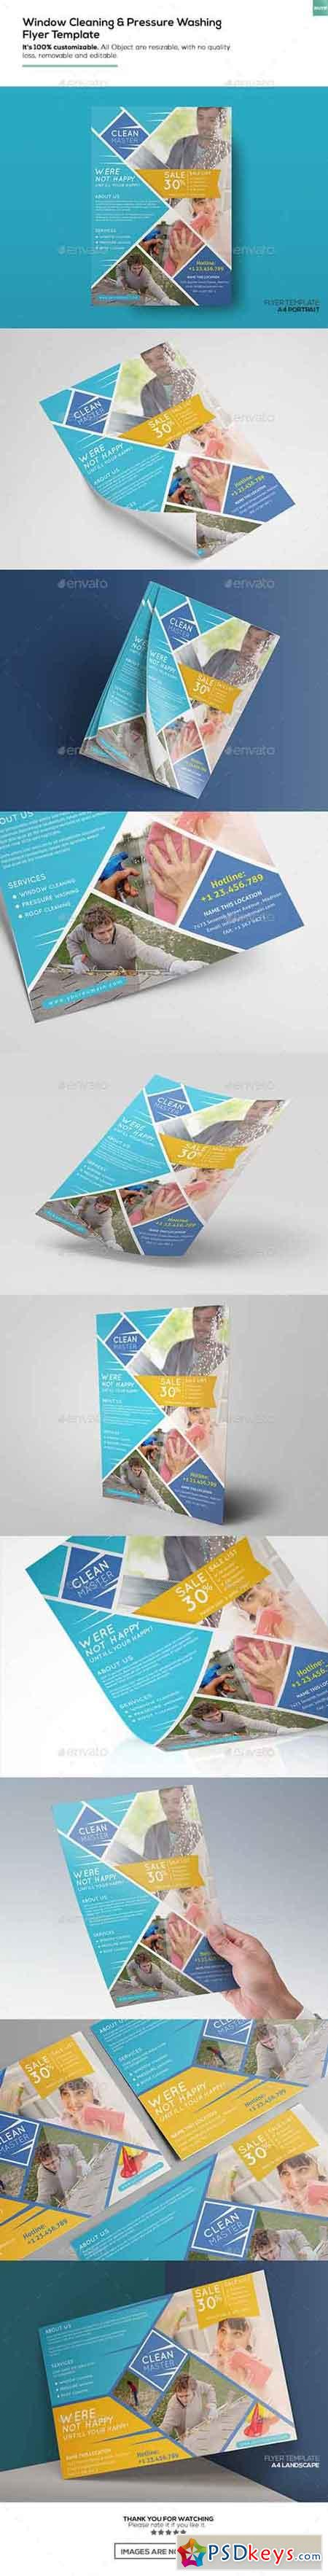 window cleaning pressure washing flyer template  window cleaning pressure washing flyer template 16345761